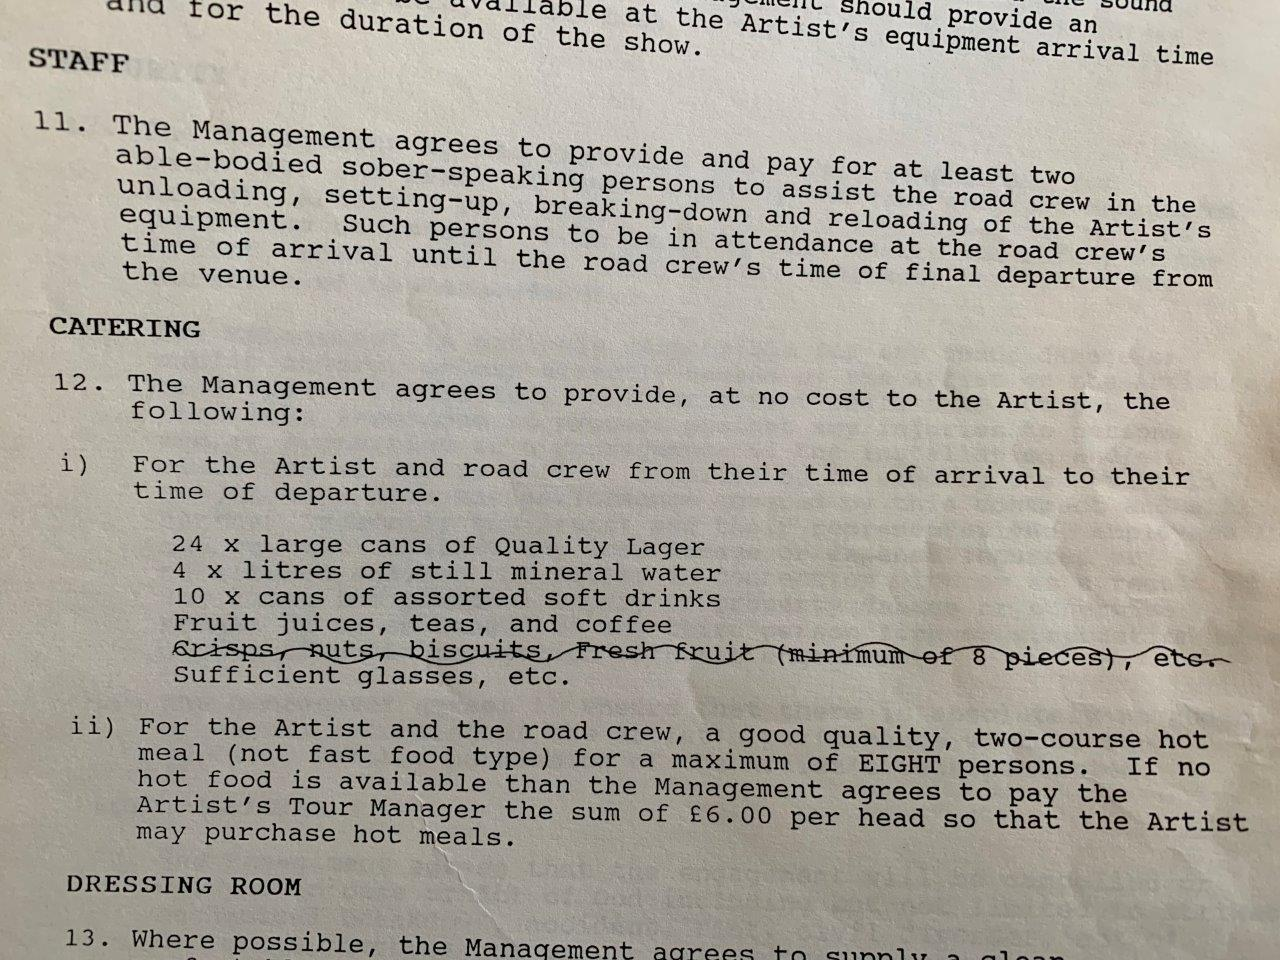 The 1994 Oasis venue contract